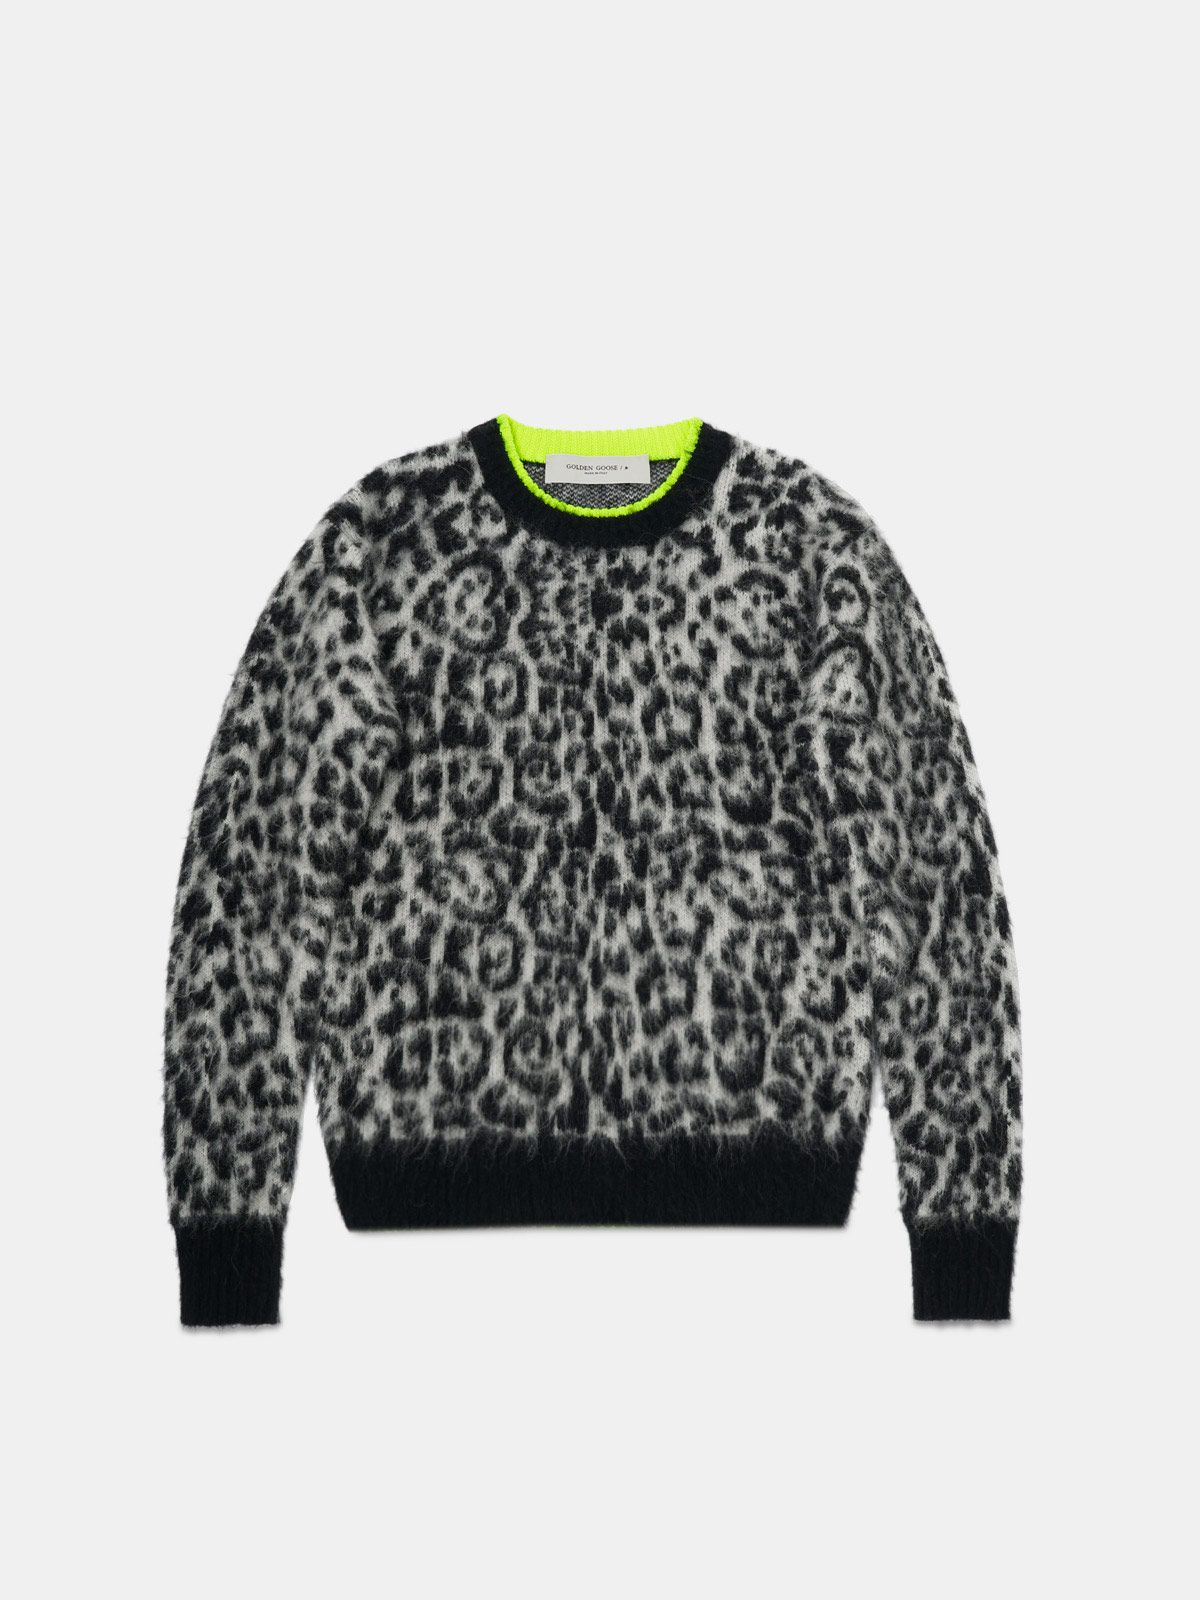 Andreina pullover with leopard pattern